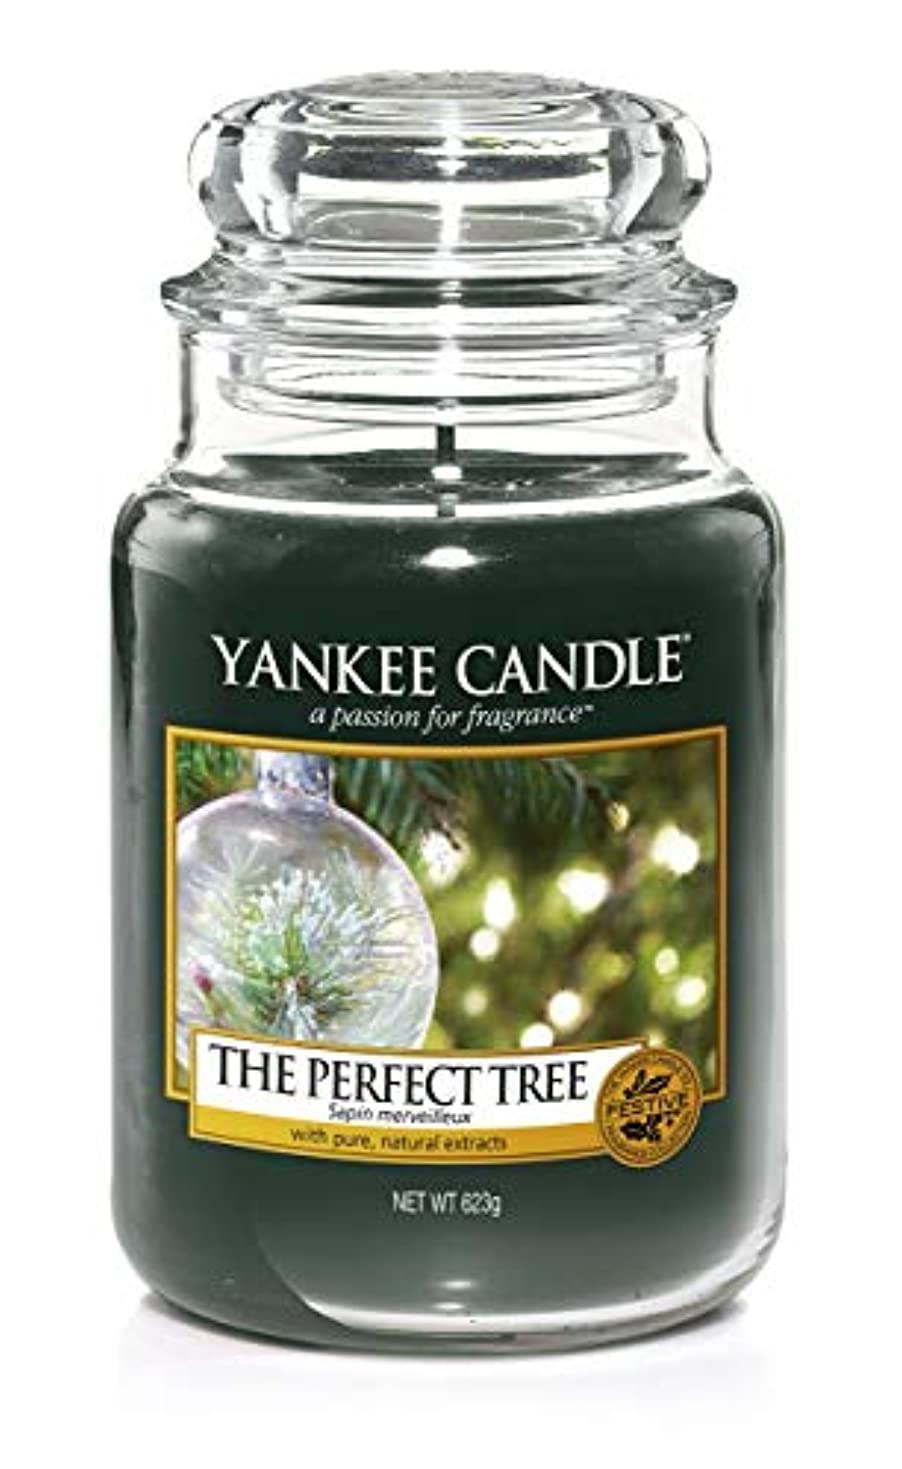 腐敗した望遠鏡バナーYankee Candle The PerfectツリーLarge Jar 22oz